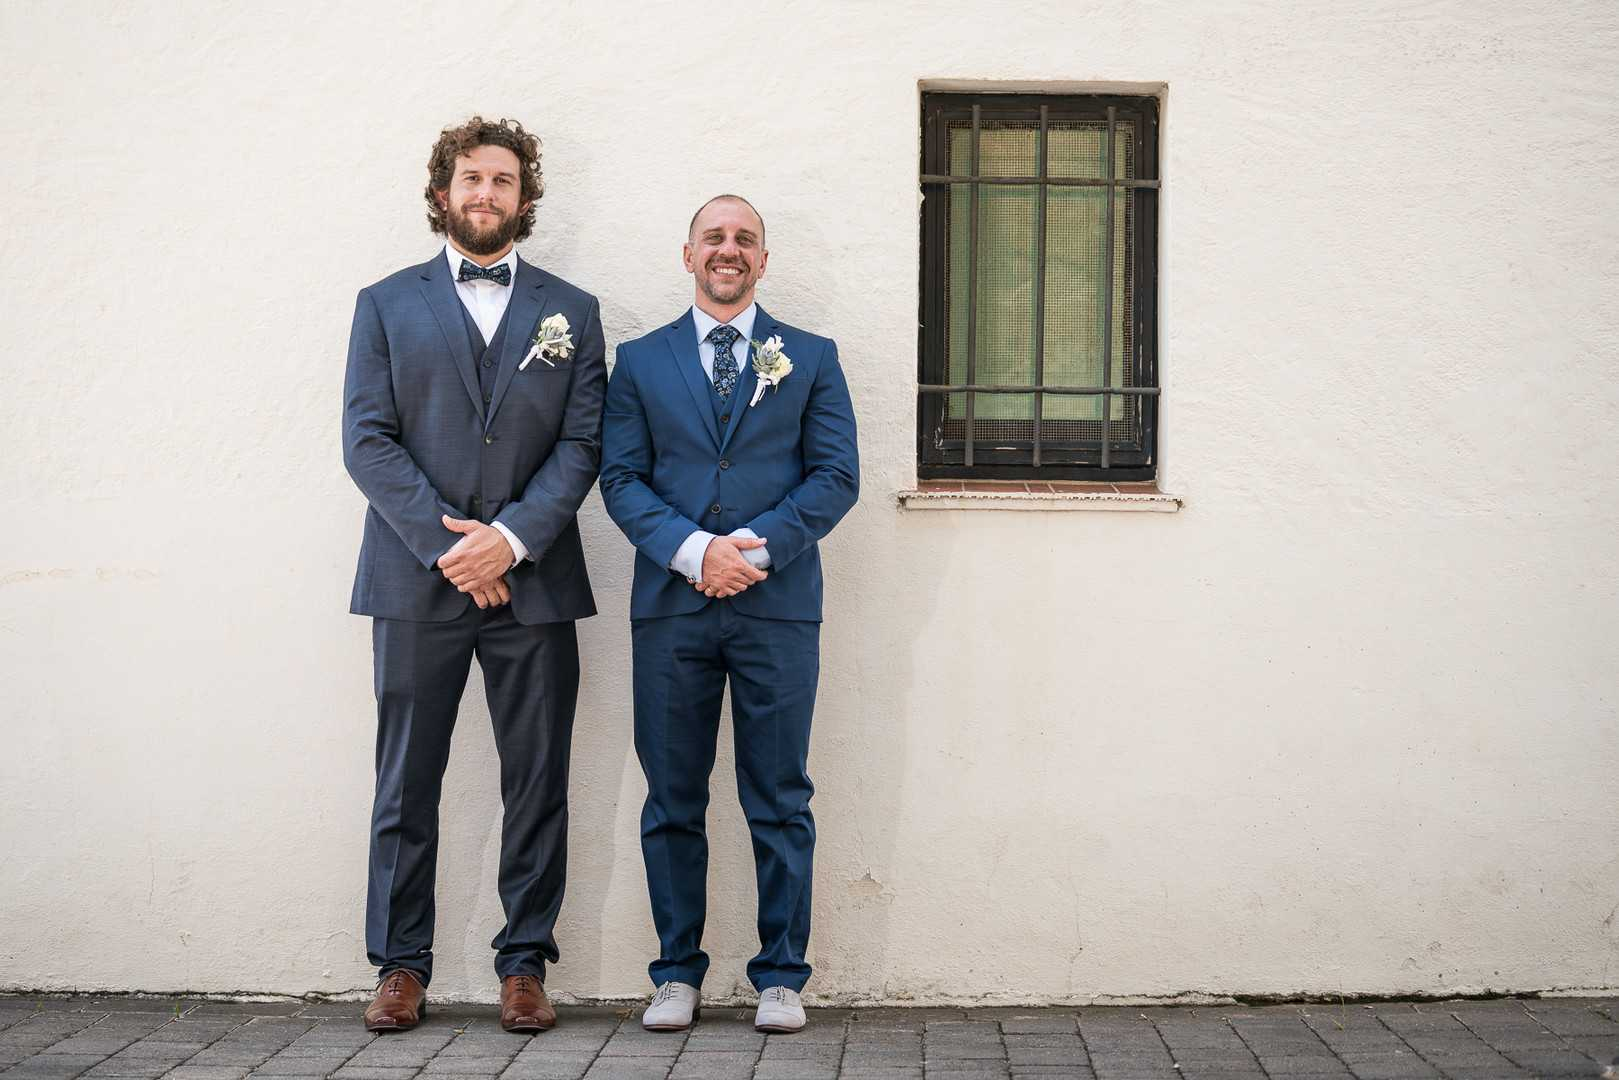 Groom and Best Man | A Coastal Spanish Wedding in Costa Brava | Kate Aspen